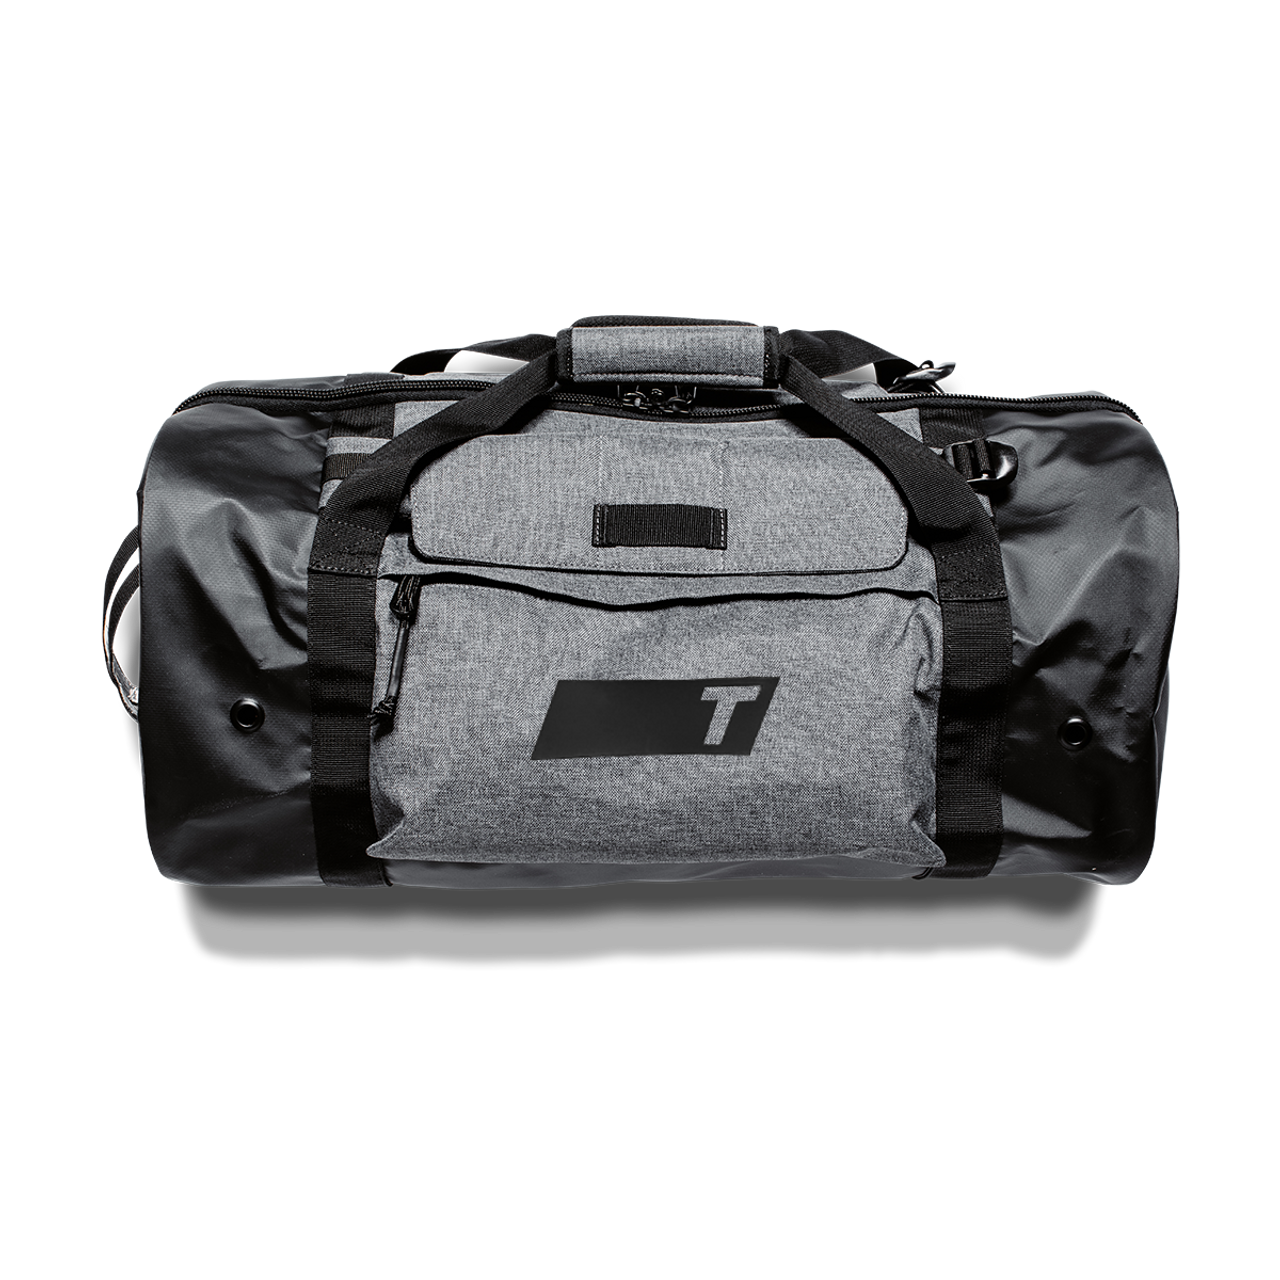 TRUE X JONES DUFFEL BAG